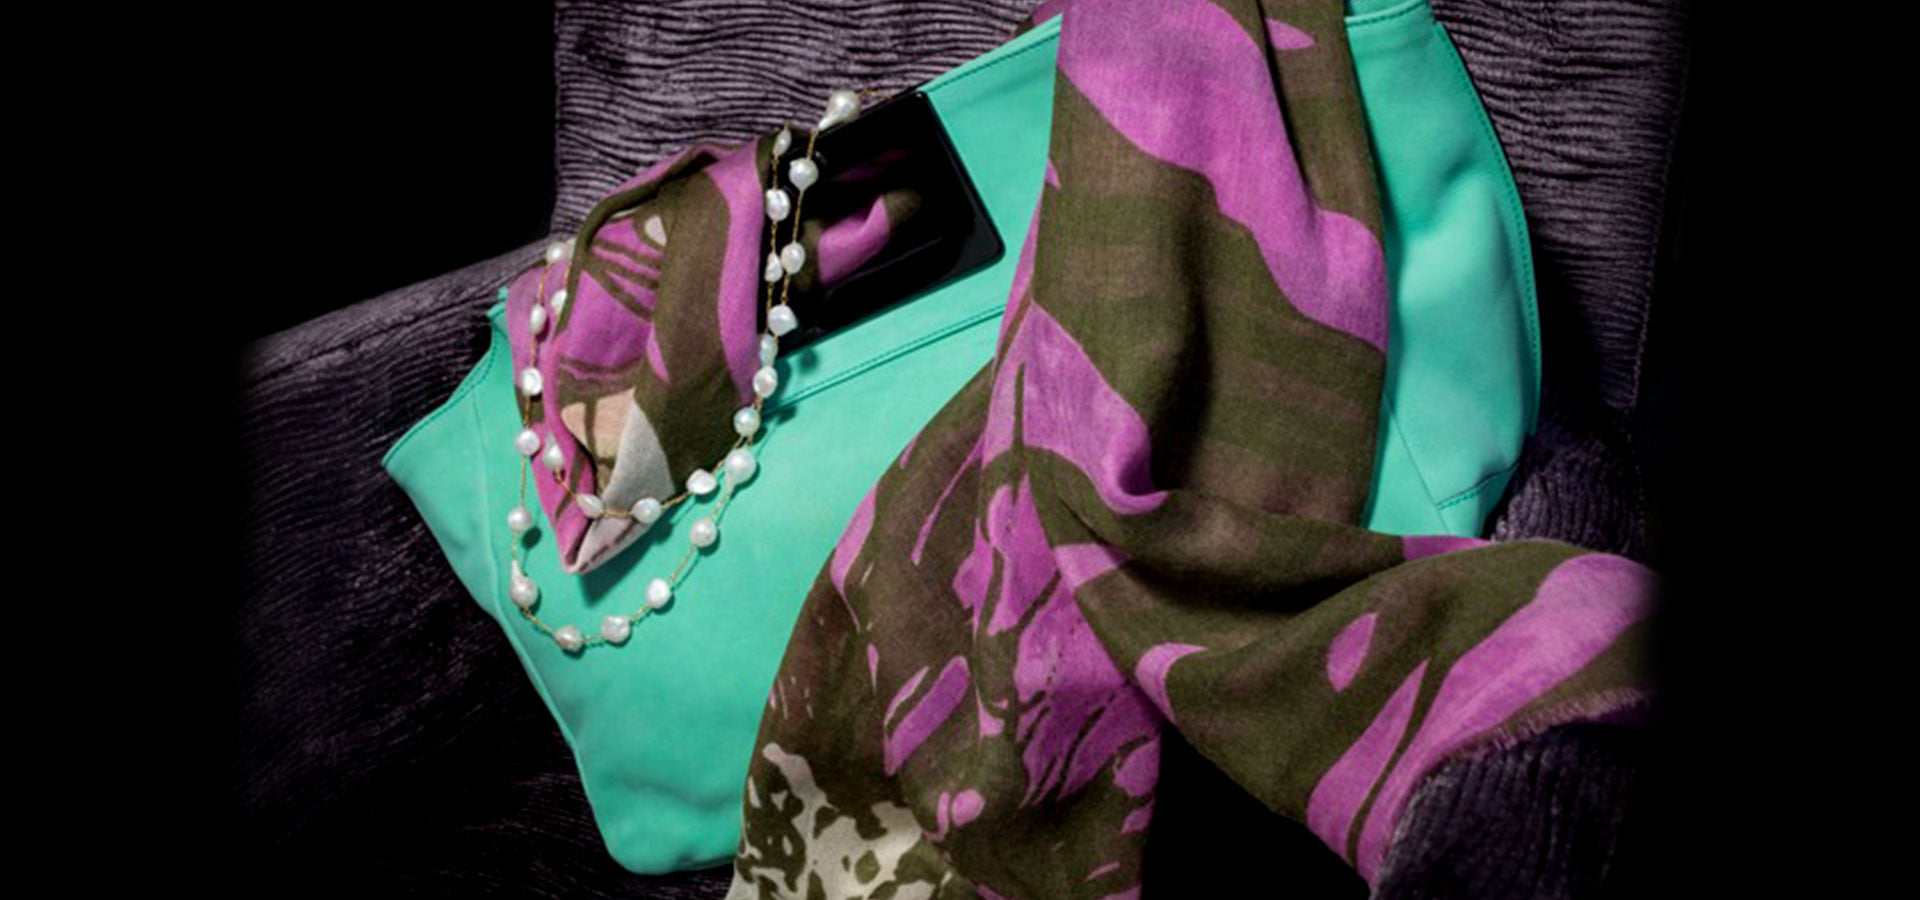 Image Showing Della Kaur's Scarf Collection, Sourced From India